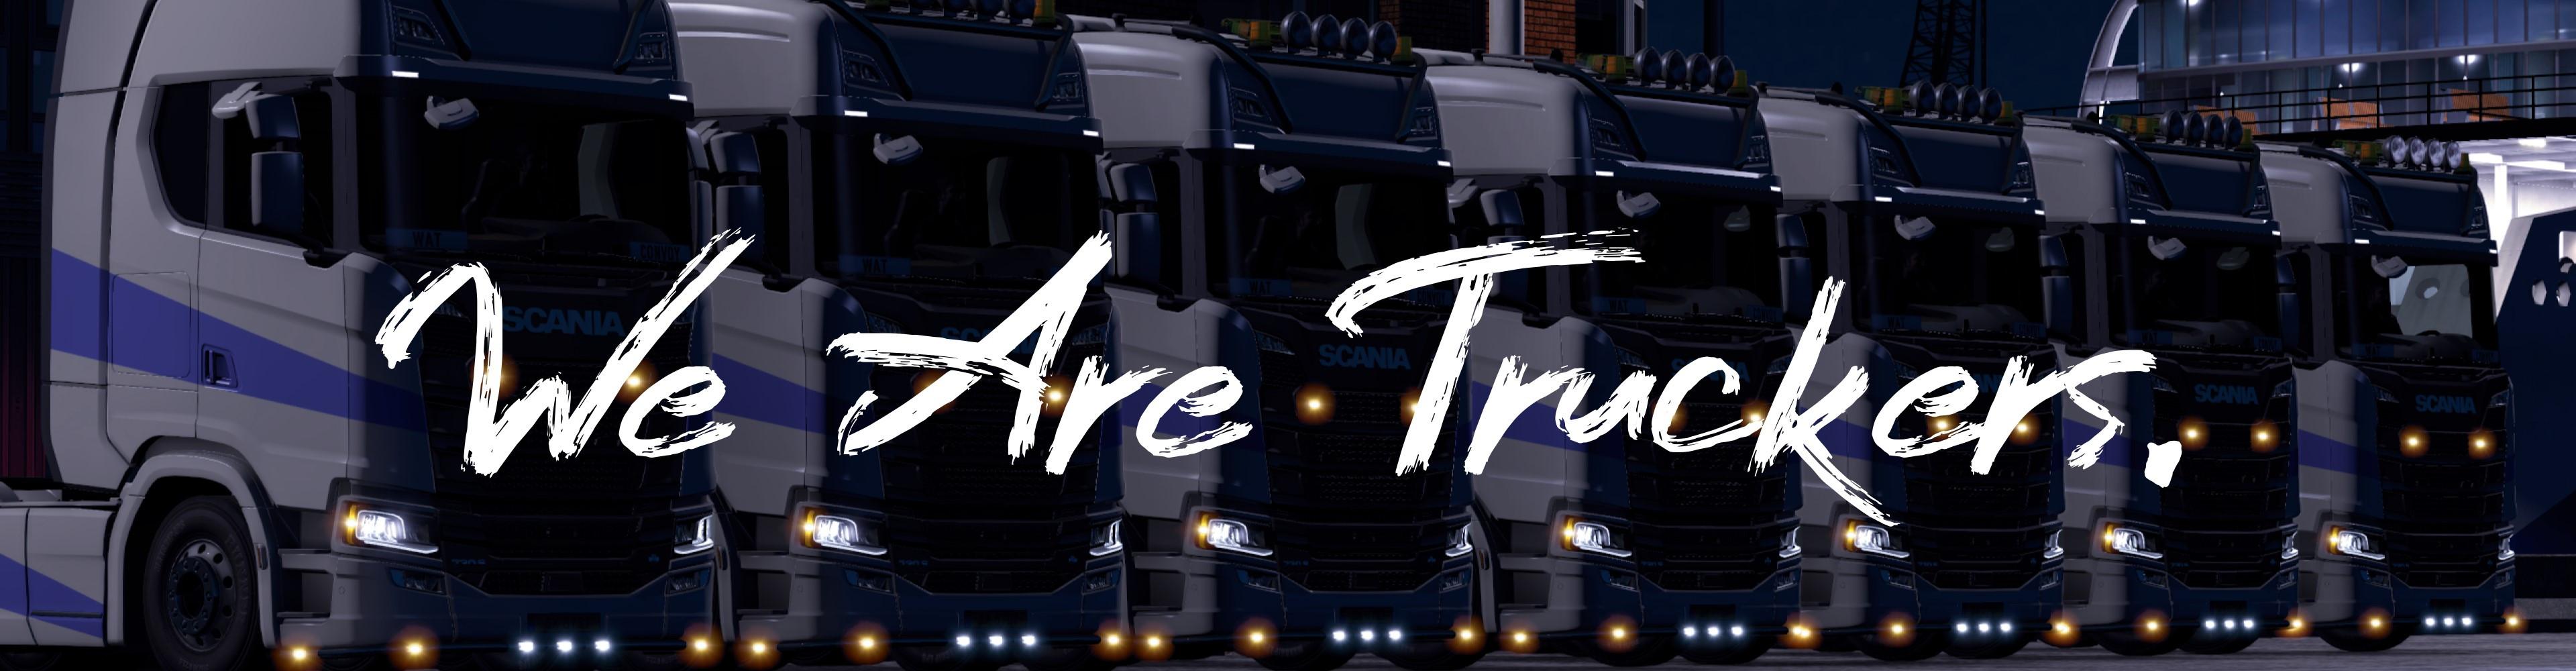 We Are Truckers - November 2021